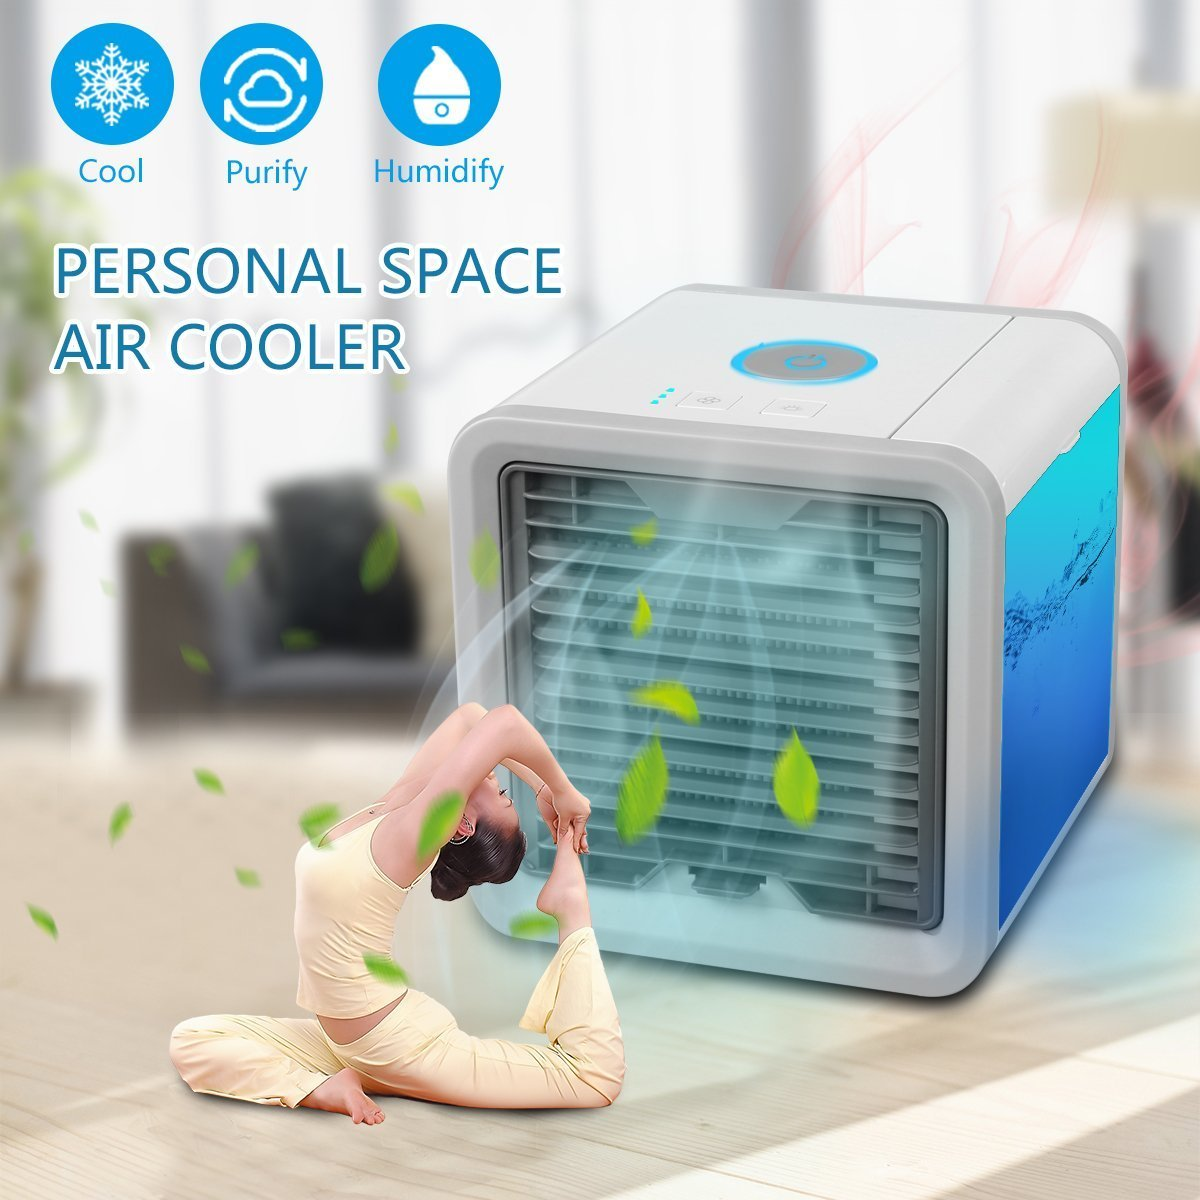 Personal Space Air Conditioner Portable Mini Air Cooler Humidifier & Purifier with 7 Colors LED Lights for Room, Office,Outdoor (White&Grey)